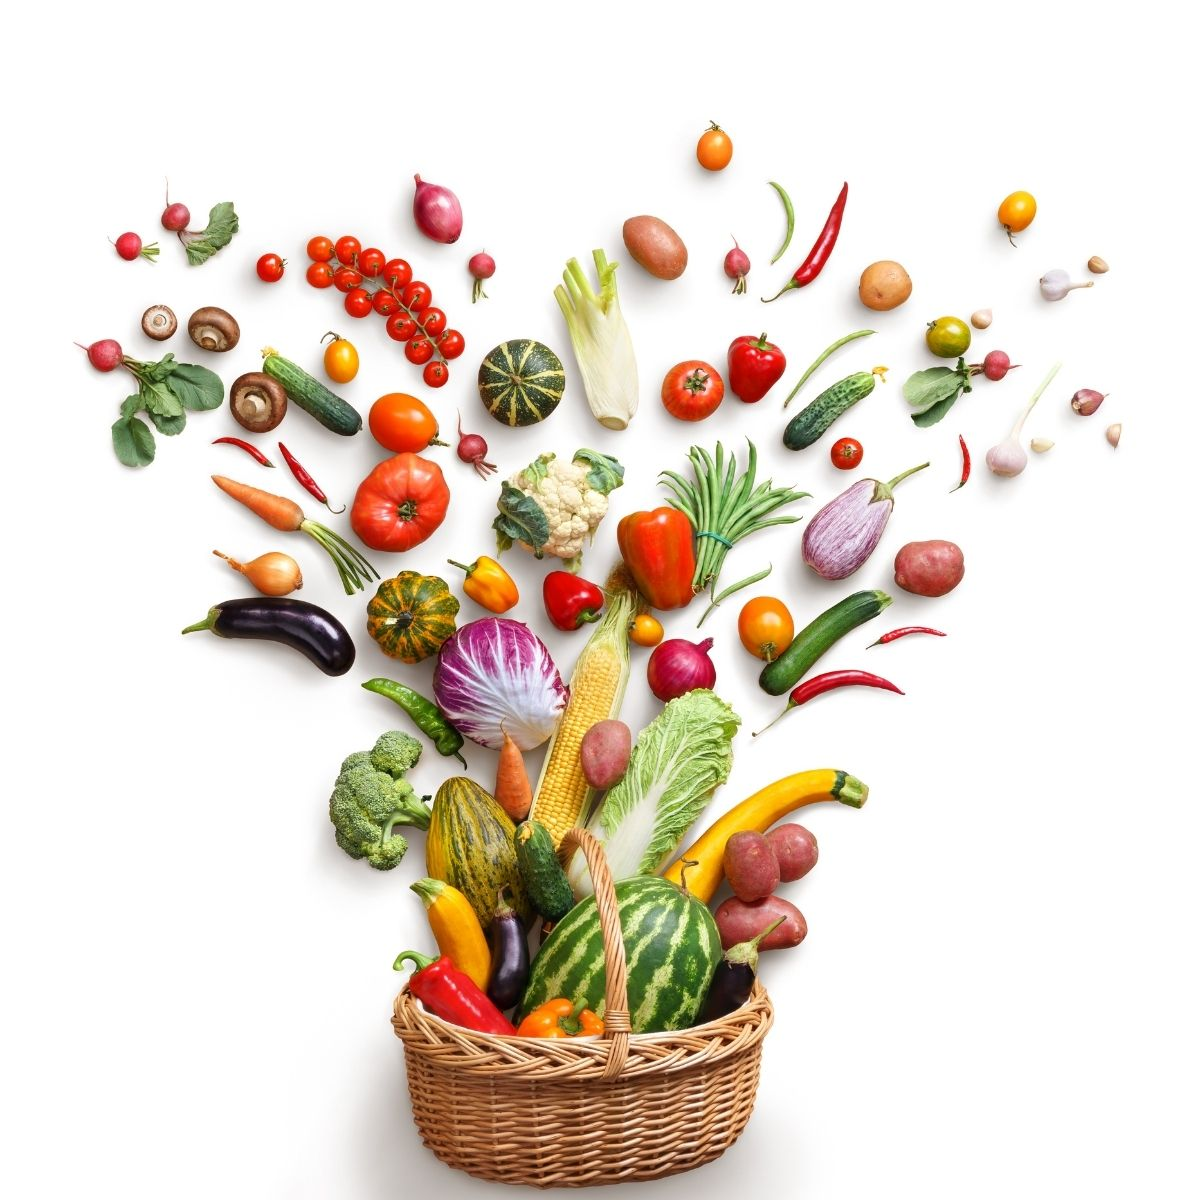 Fruits and vegetable spraying outward from a basket to resemble a bouquet